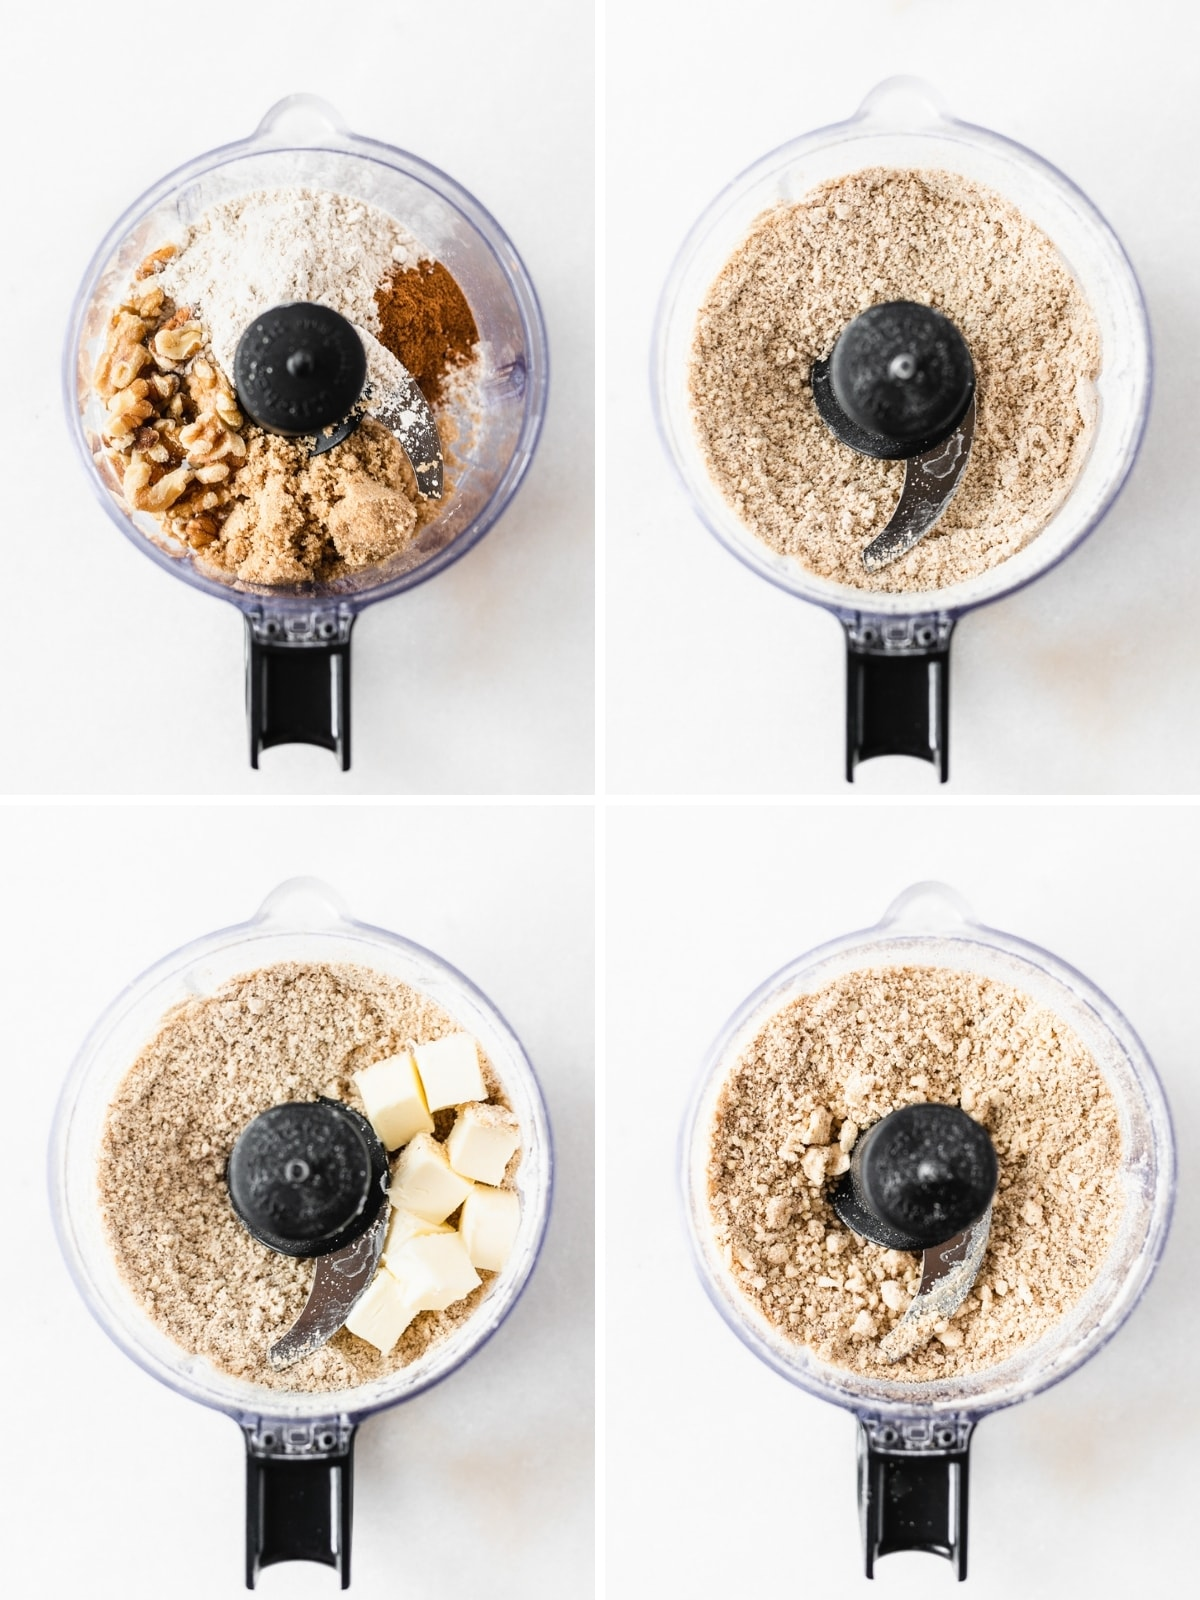 four image collage showing steps for making crumb topping for blackberry crumble baked oatmeal.